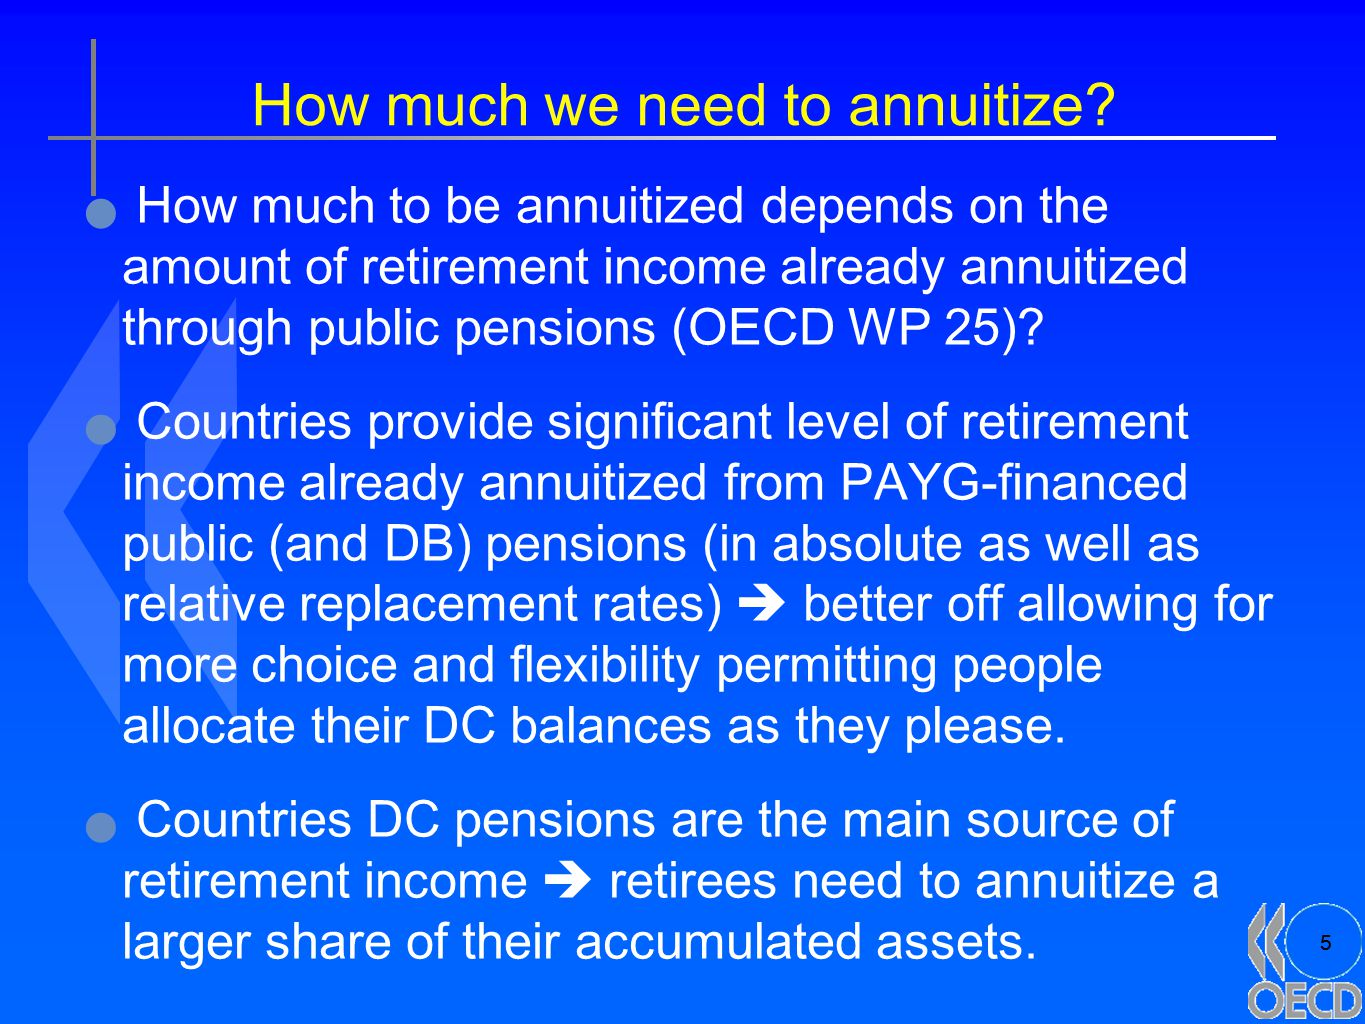 5 How much we need to annuitize.